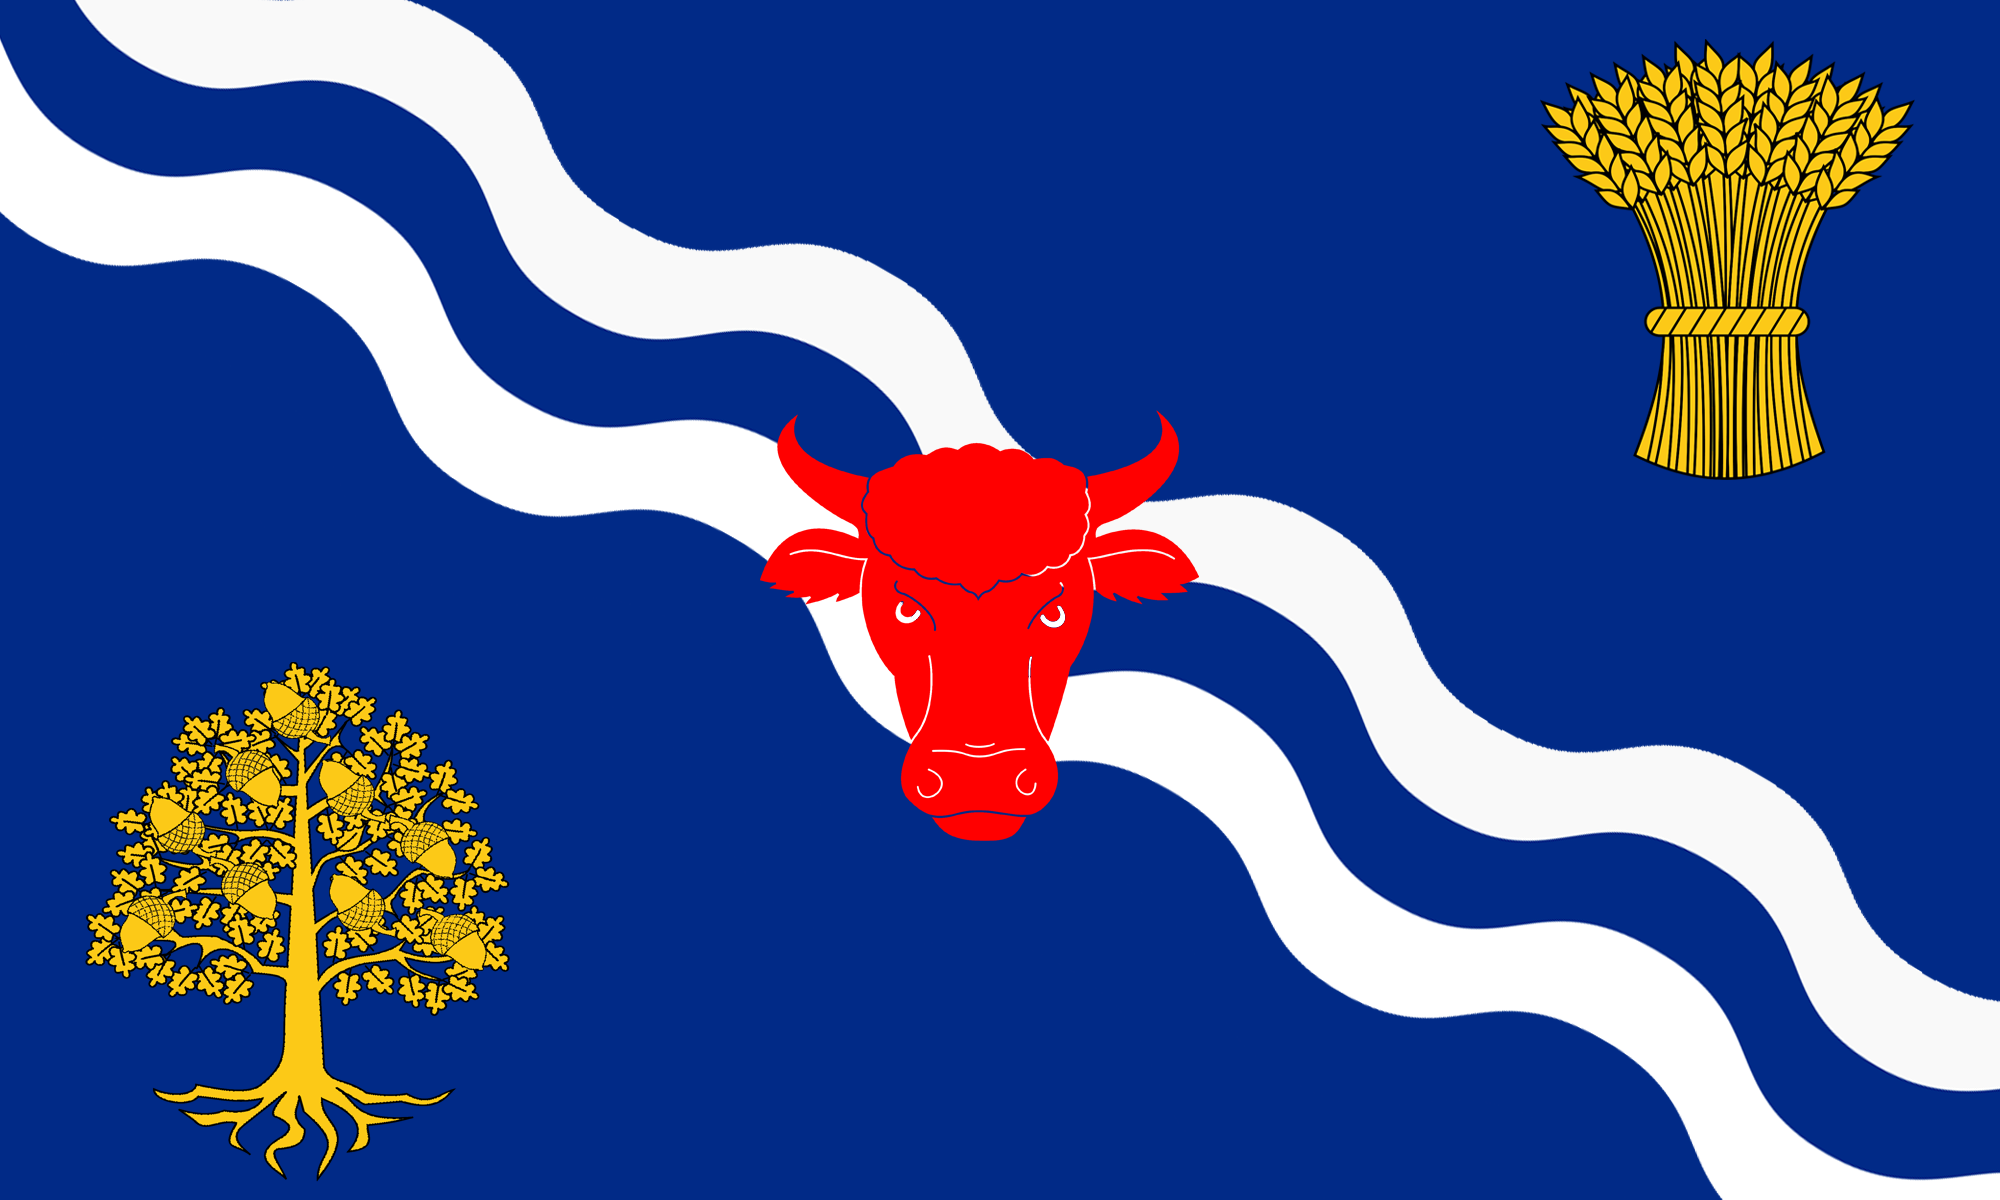 Flag gallery british county flags - Flag Gallery British County Flags 40